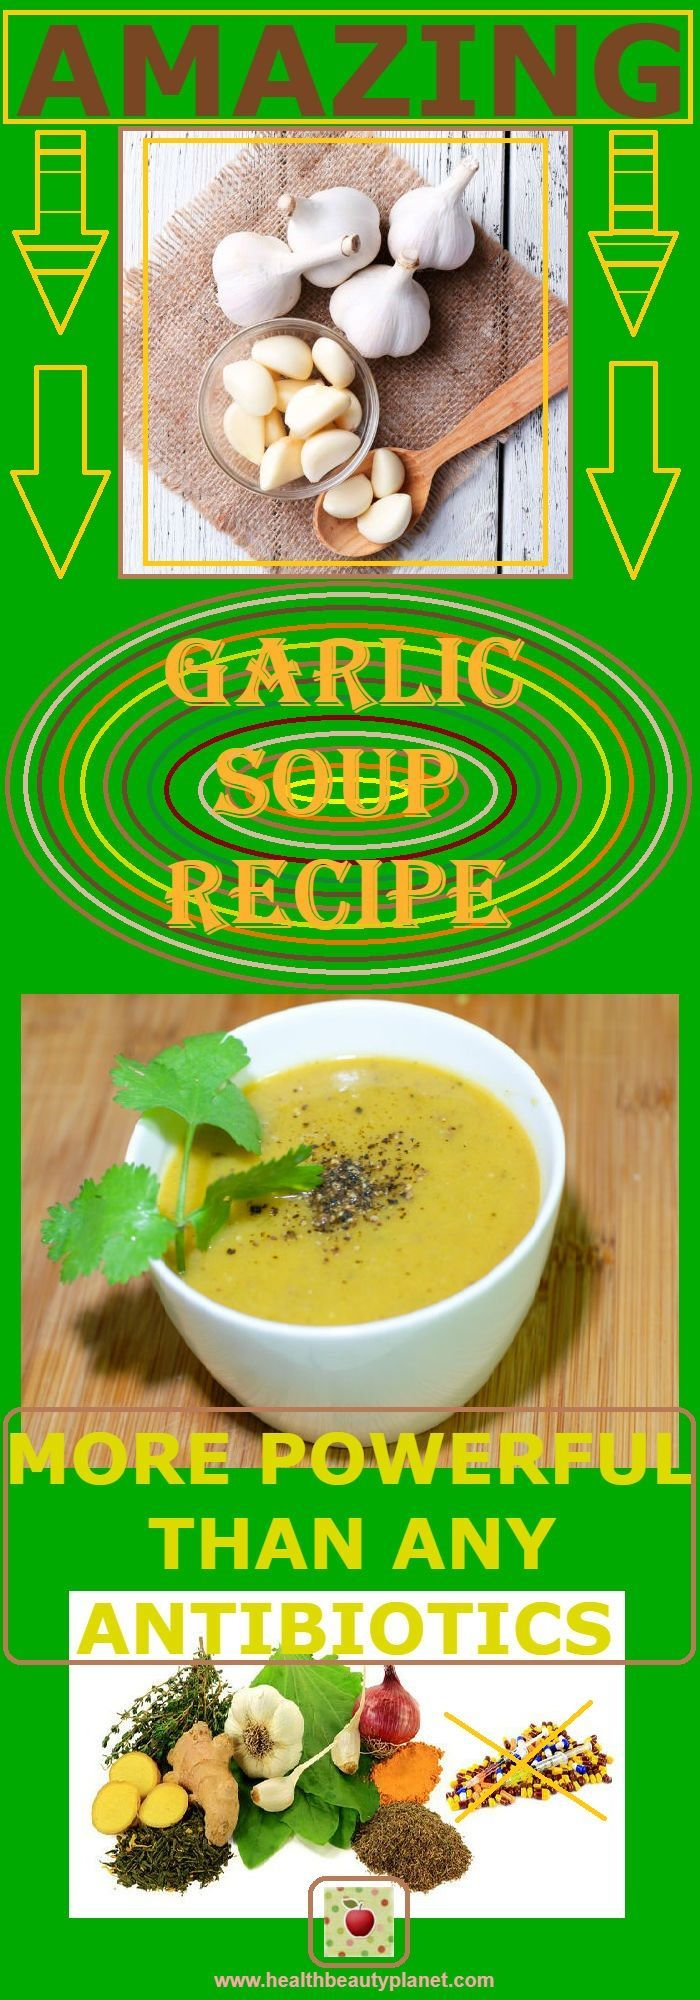 This Garlic Soup Recipe Is 15 X More Powerful Than Any Antibiotics - Beats The Flu, Common Cold, and Sinus Infections. According to a recent finding from Washington State University, garlic is 100 times more effective than the two most popular antibiotics for fighting diseases.